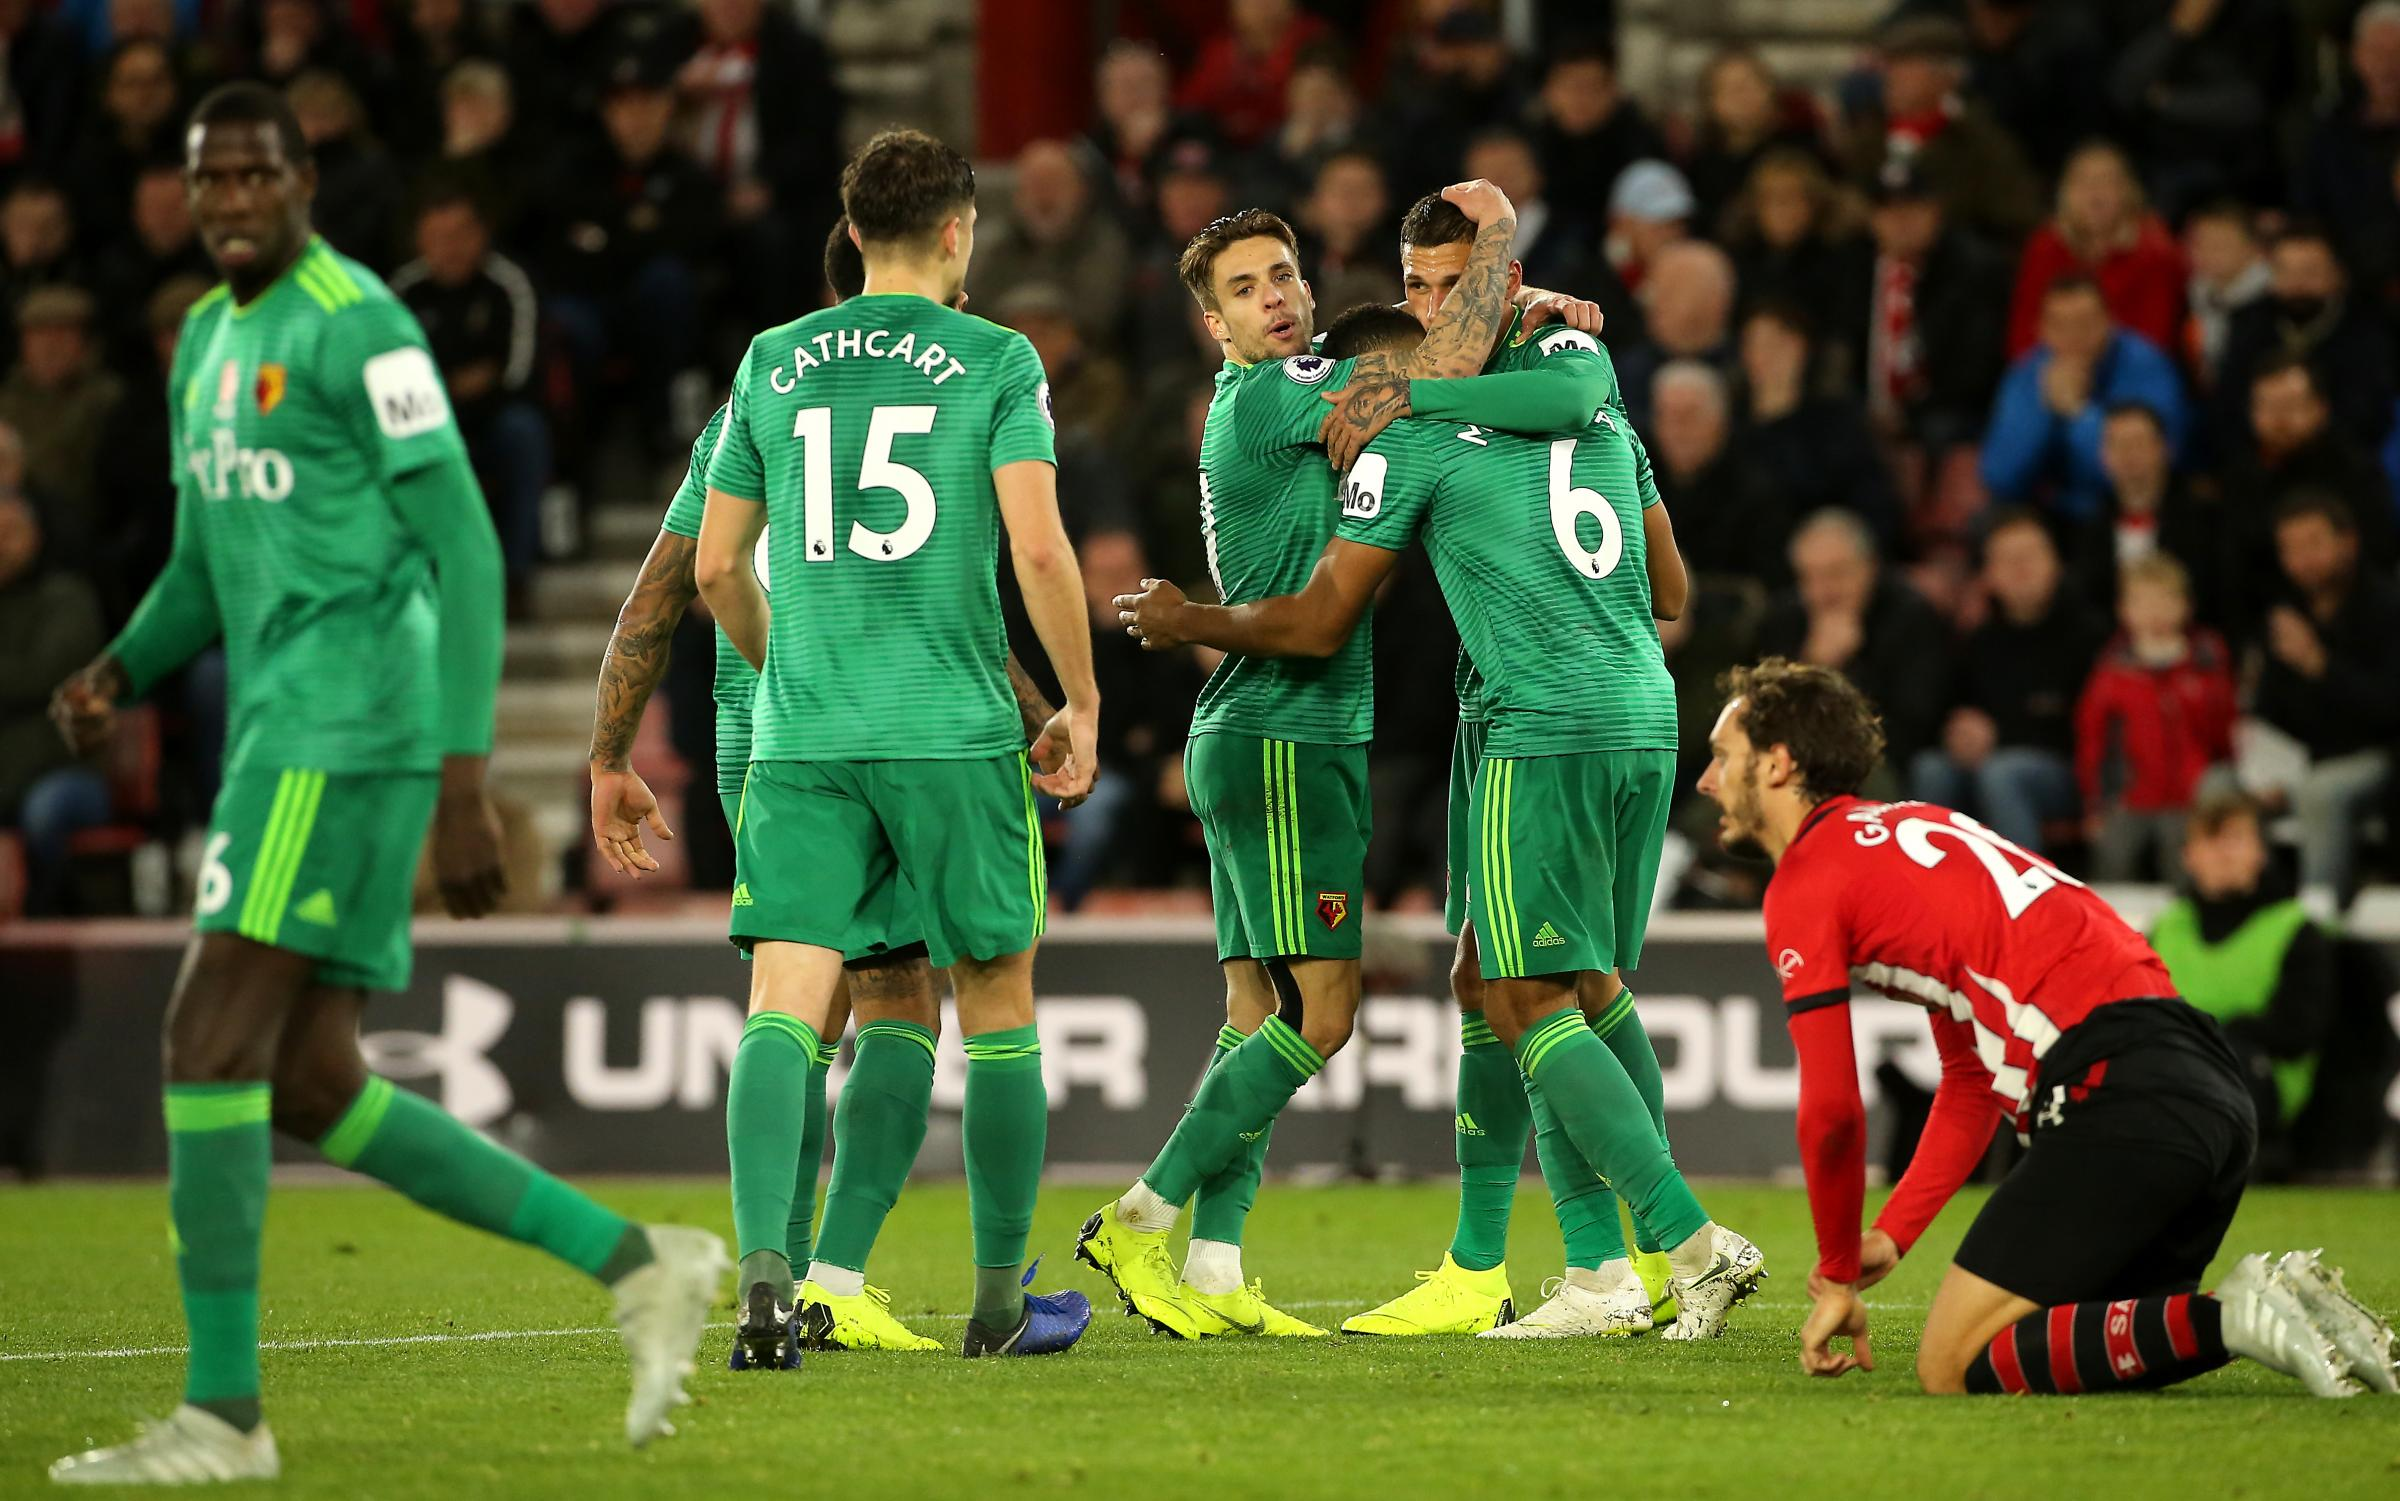 Jose Holebas scores a late equalizer as Southampton draw 1-1 with Watford at St Mary's